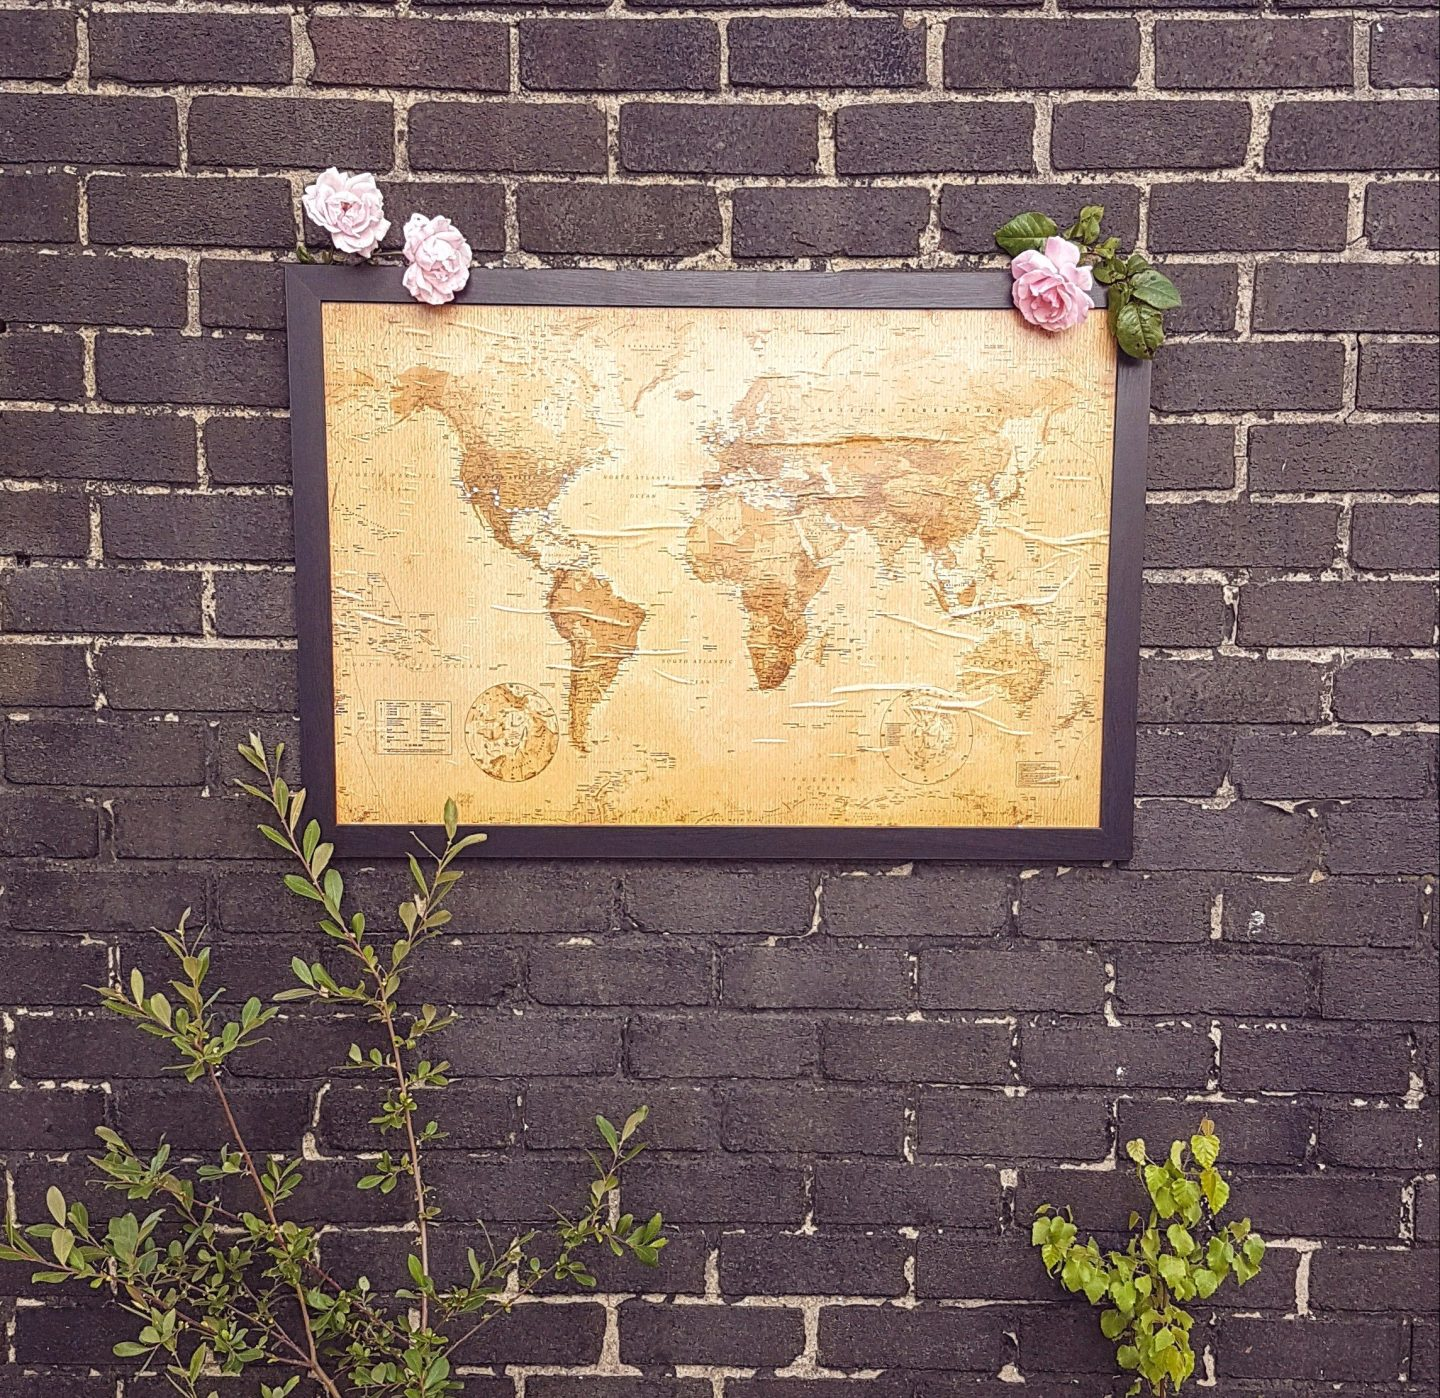 DIY Travel Cork Board Map